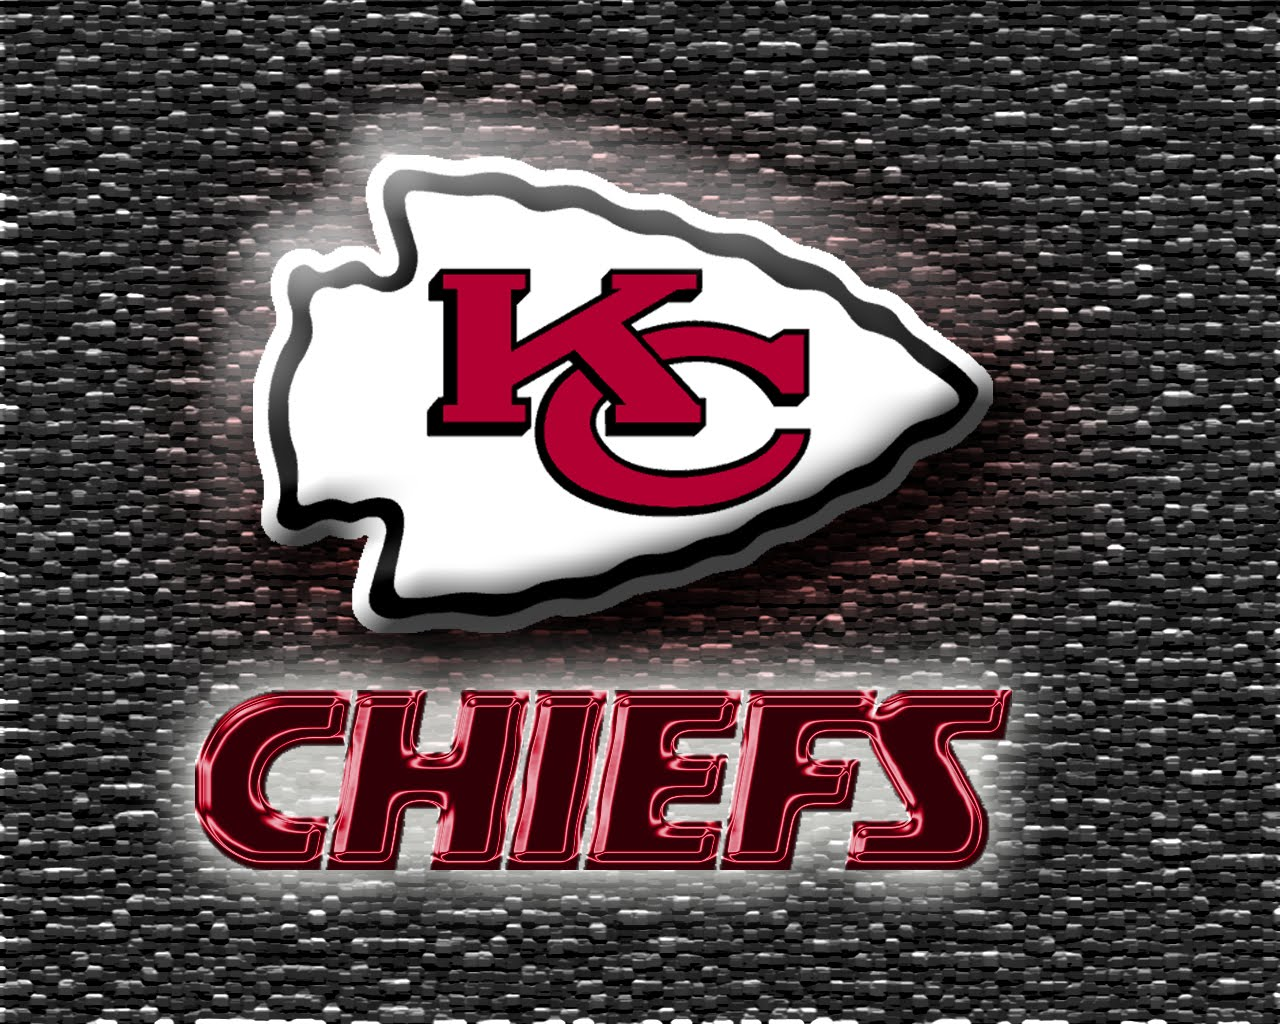 http://3.bp.blogspot.com/_bQ0SqifjNcg/S7TuQx9NcZI/AAAAAAAATGk/L9125iAb0Co/s1600/kansas-city-chiefs-wallpaper.jpg